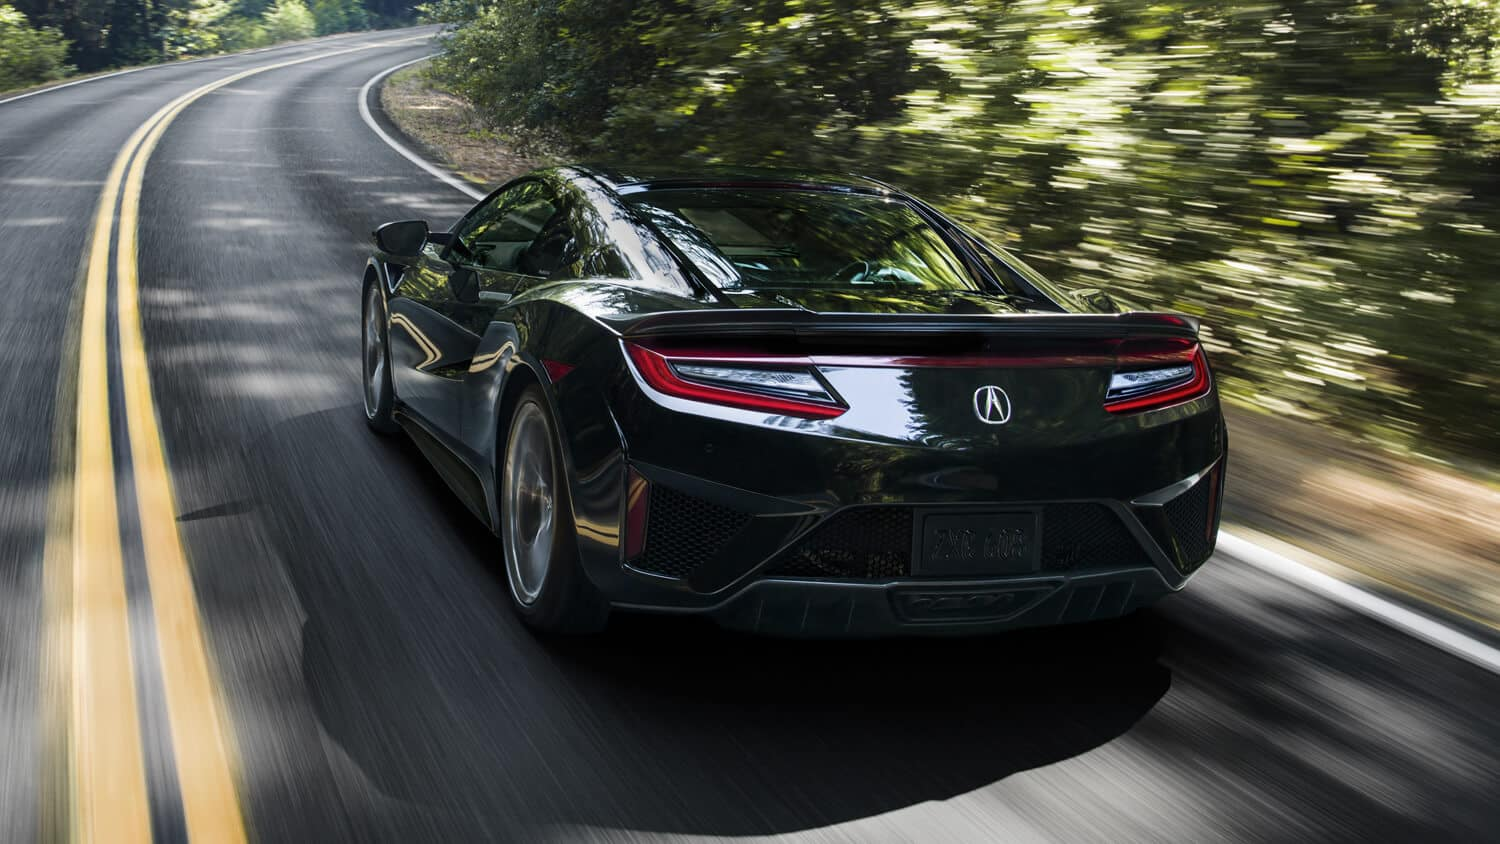 2018 Acura NSX Exterior Forest Rear Angle